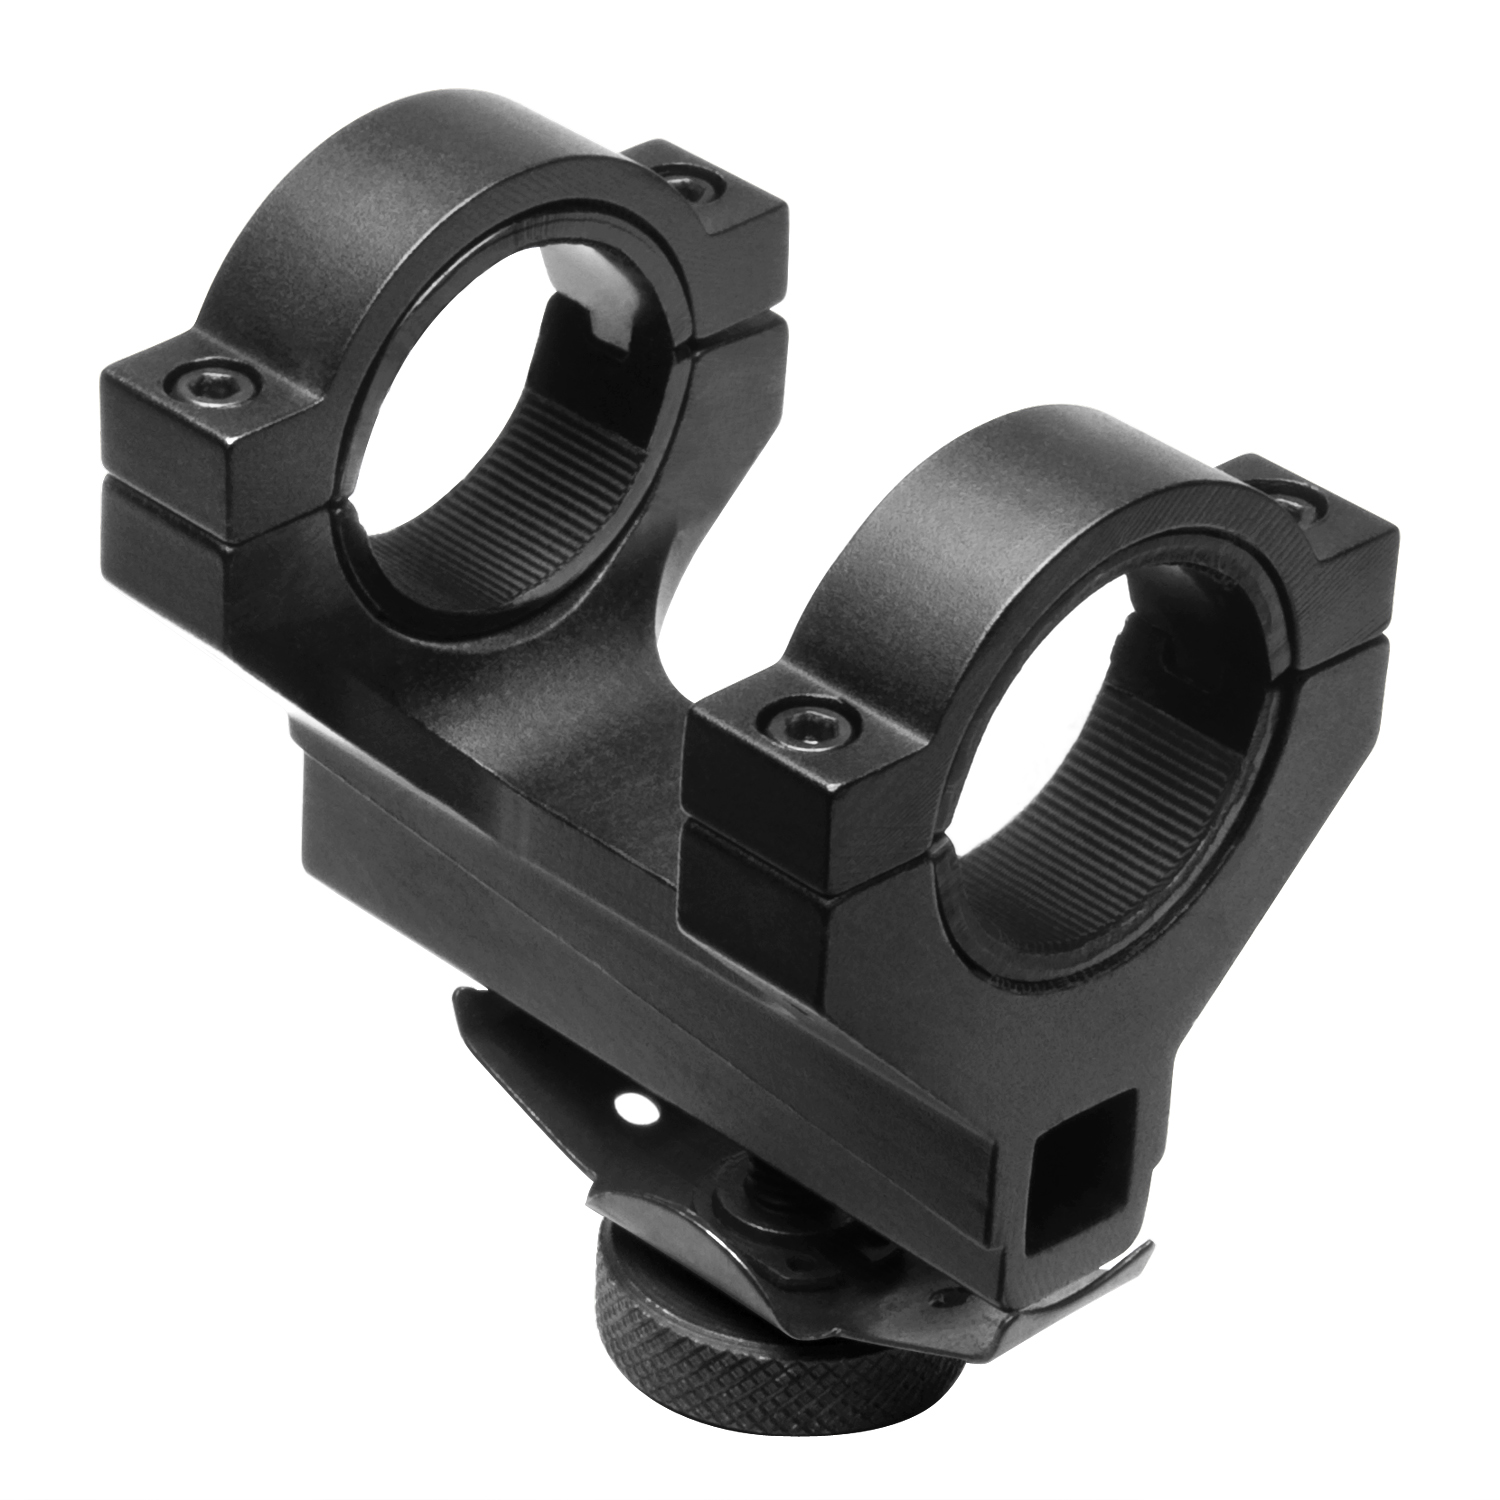 Ncstar AR15 Carry Handle 30Mm Scope Mount With 1 Inch Inserts